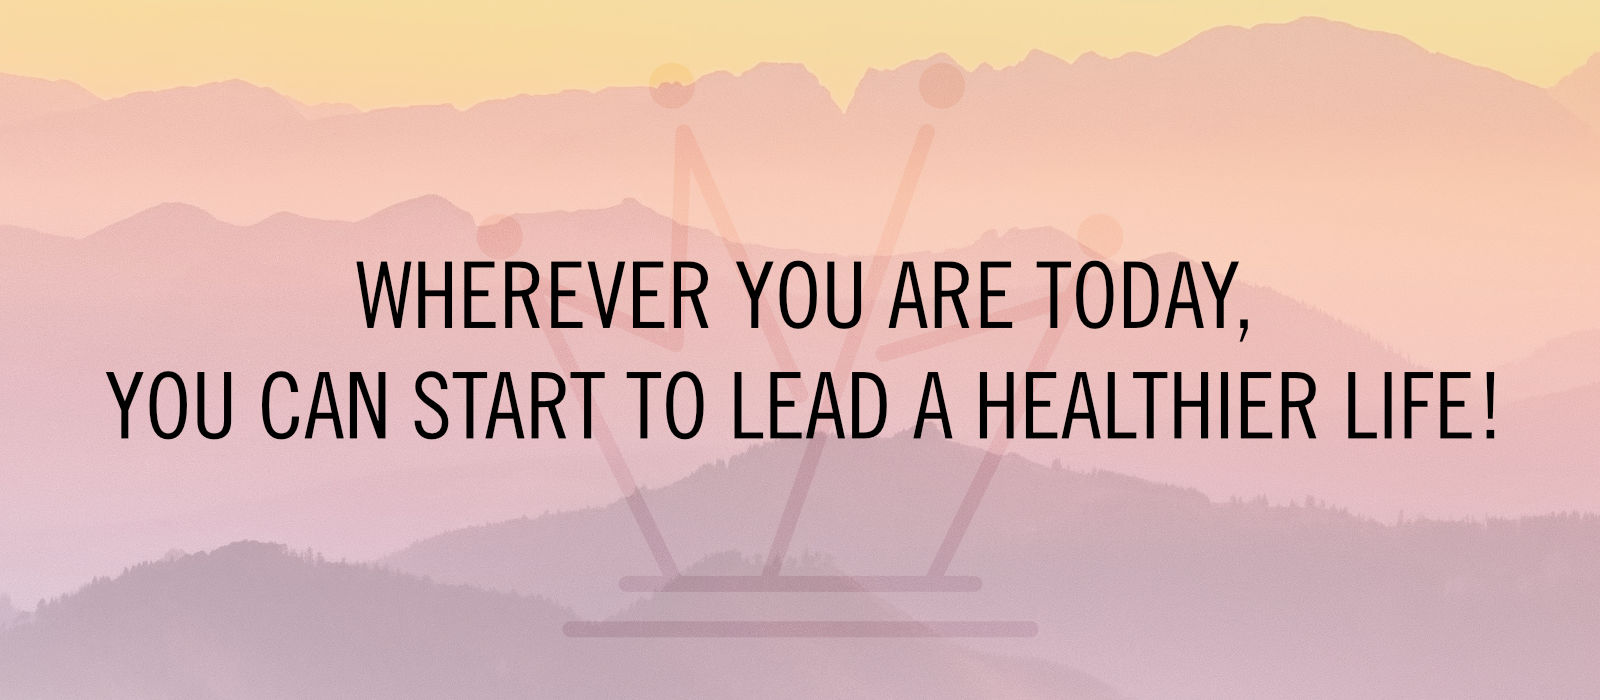 Wherever you are today, you can start to lead a healthier life!